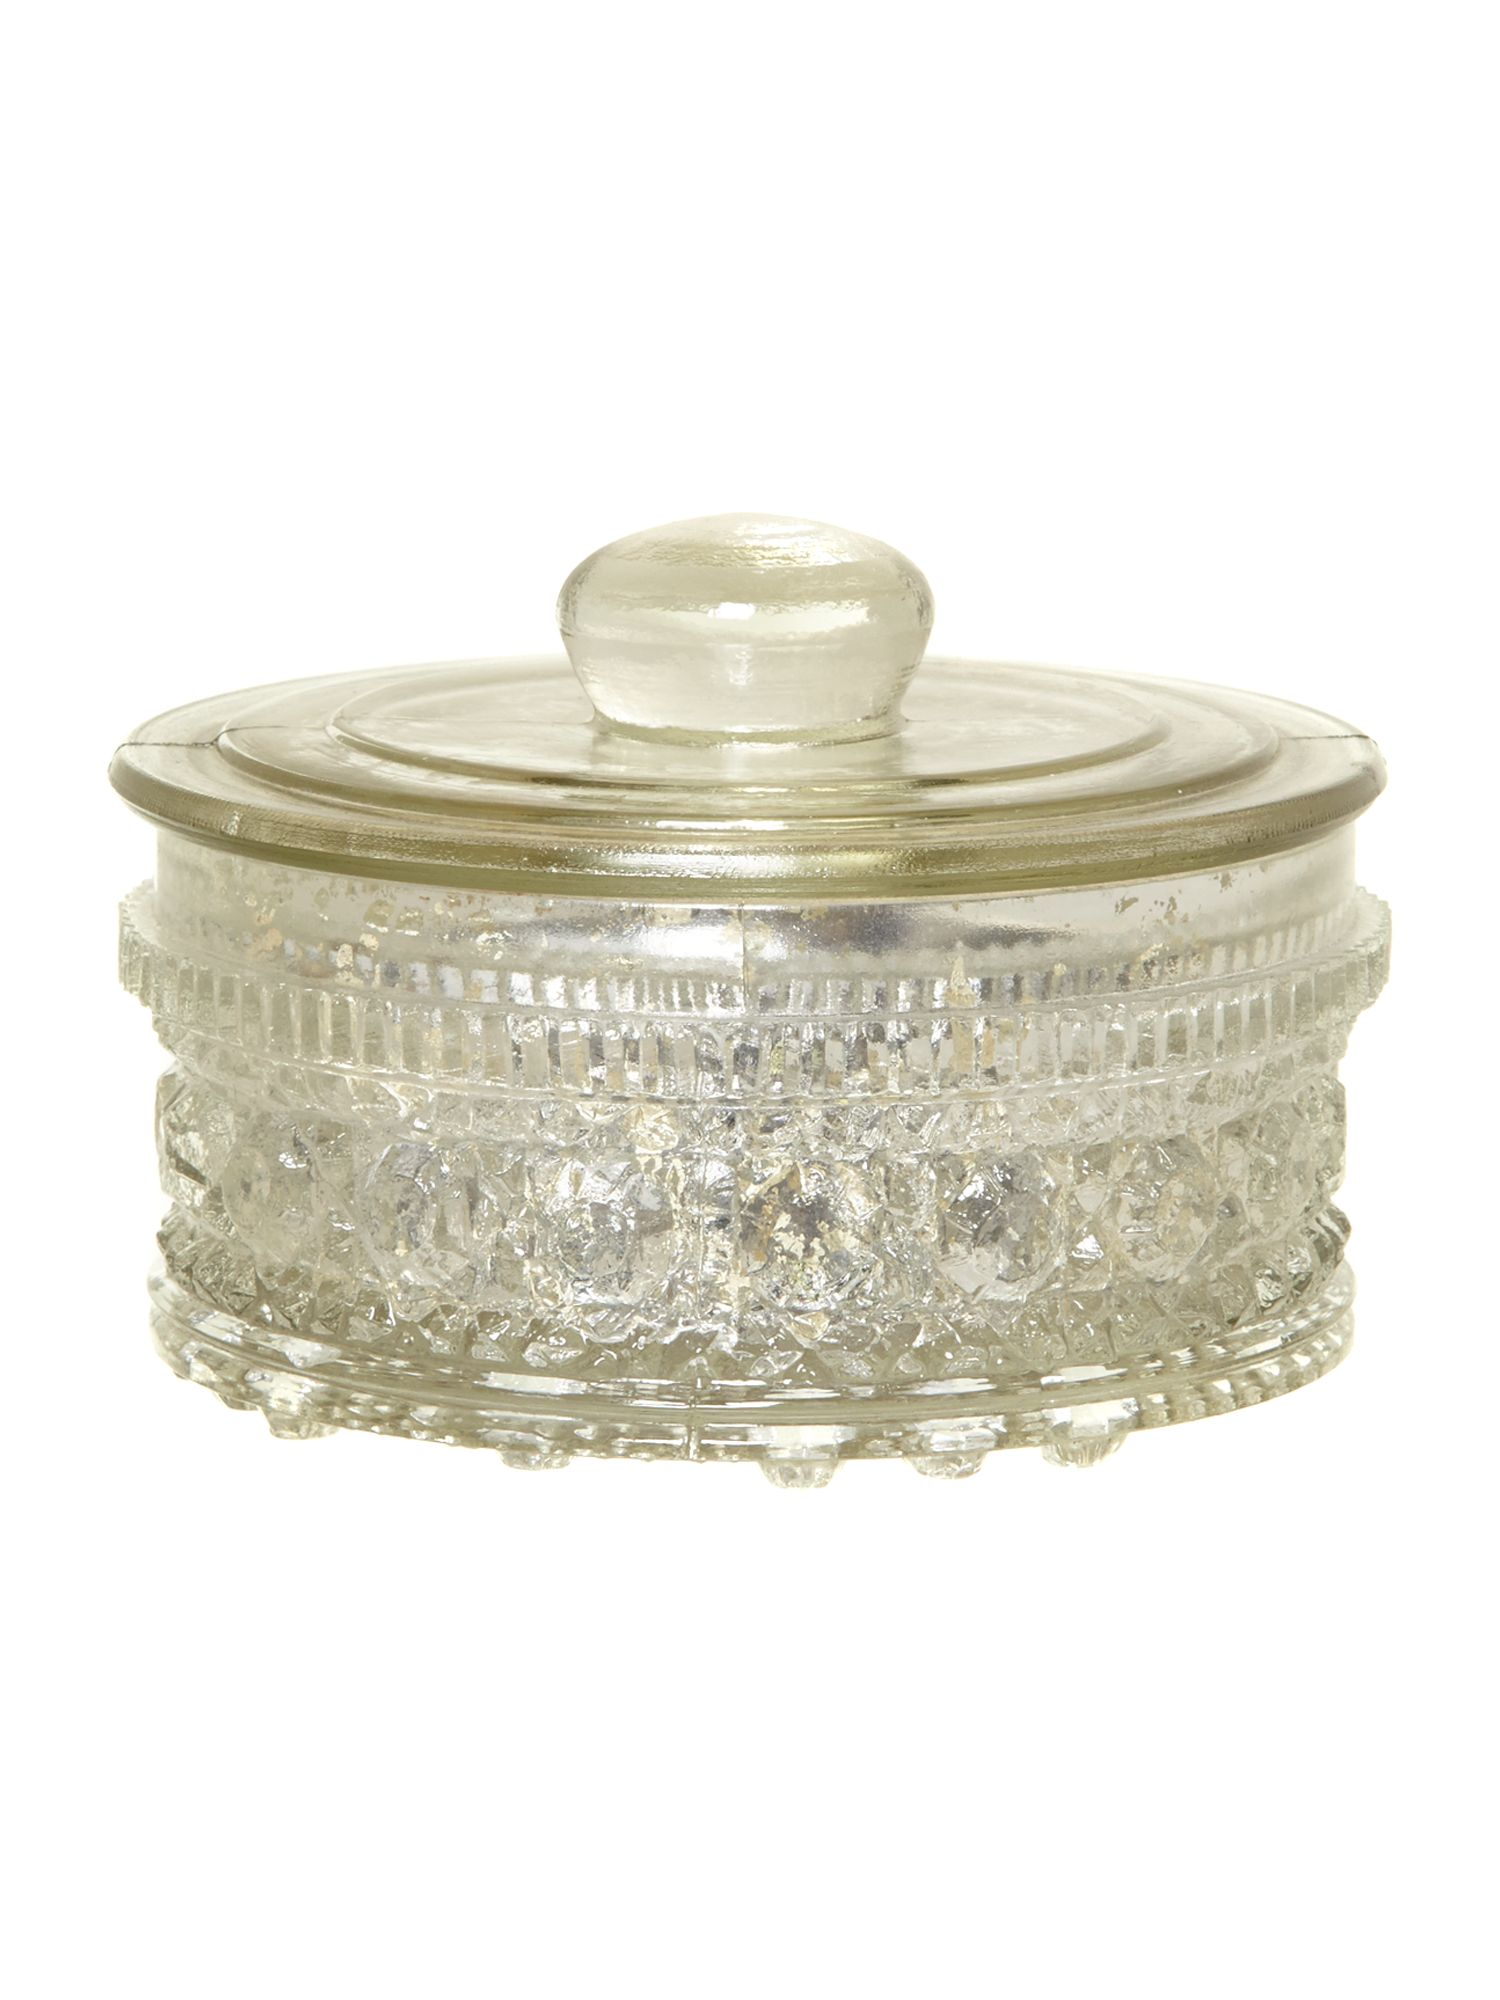 Mercury glass trinket box